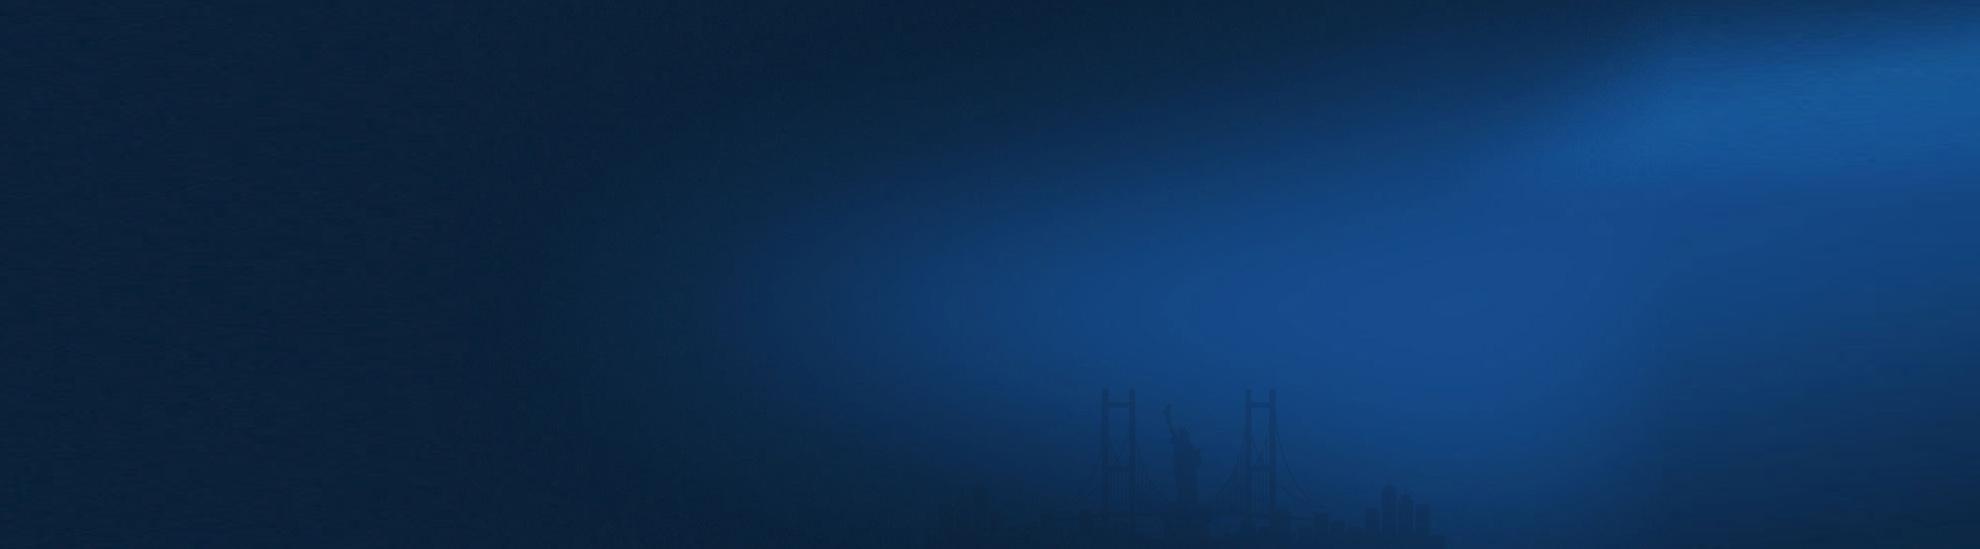 banner2-background-blue